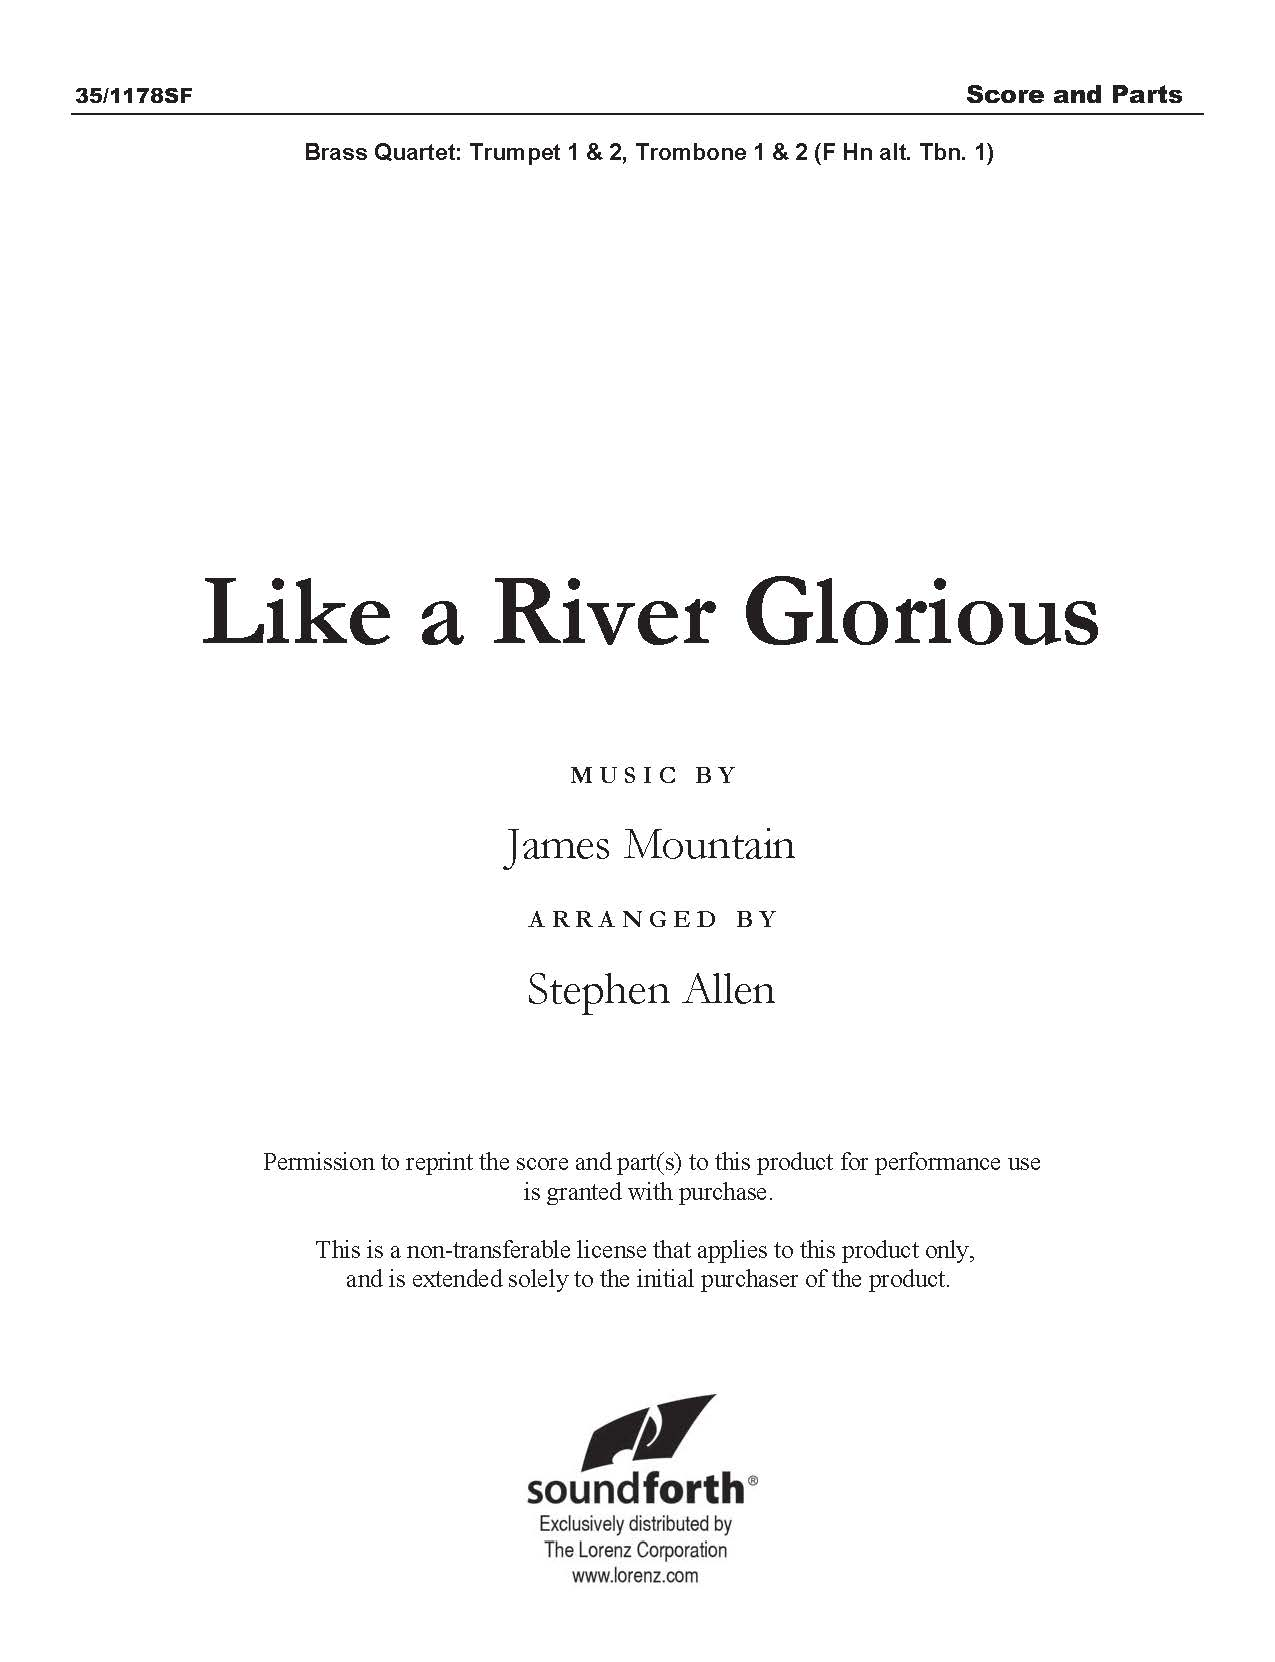 Like a River Glorious - Digital Delivery